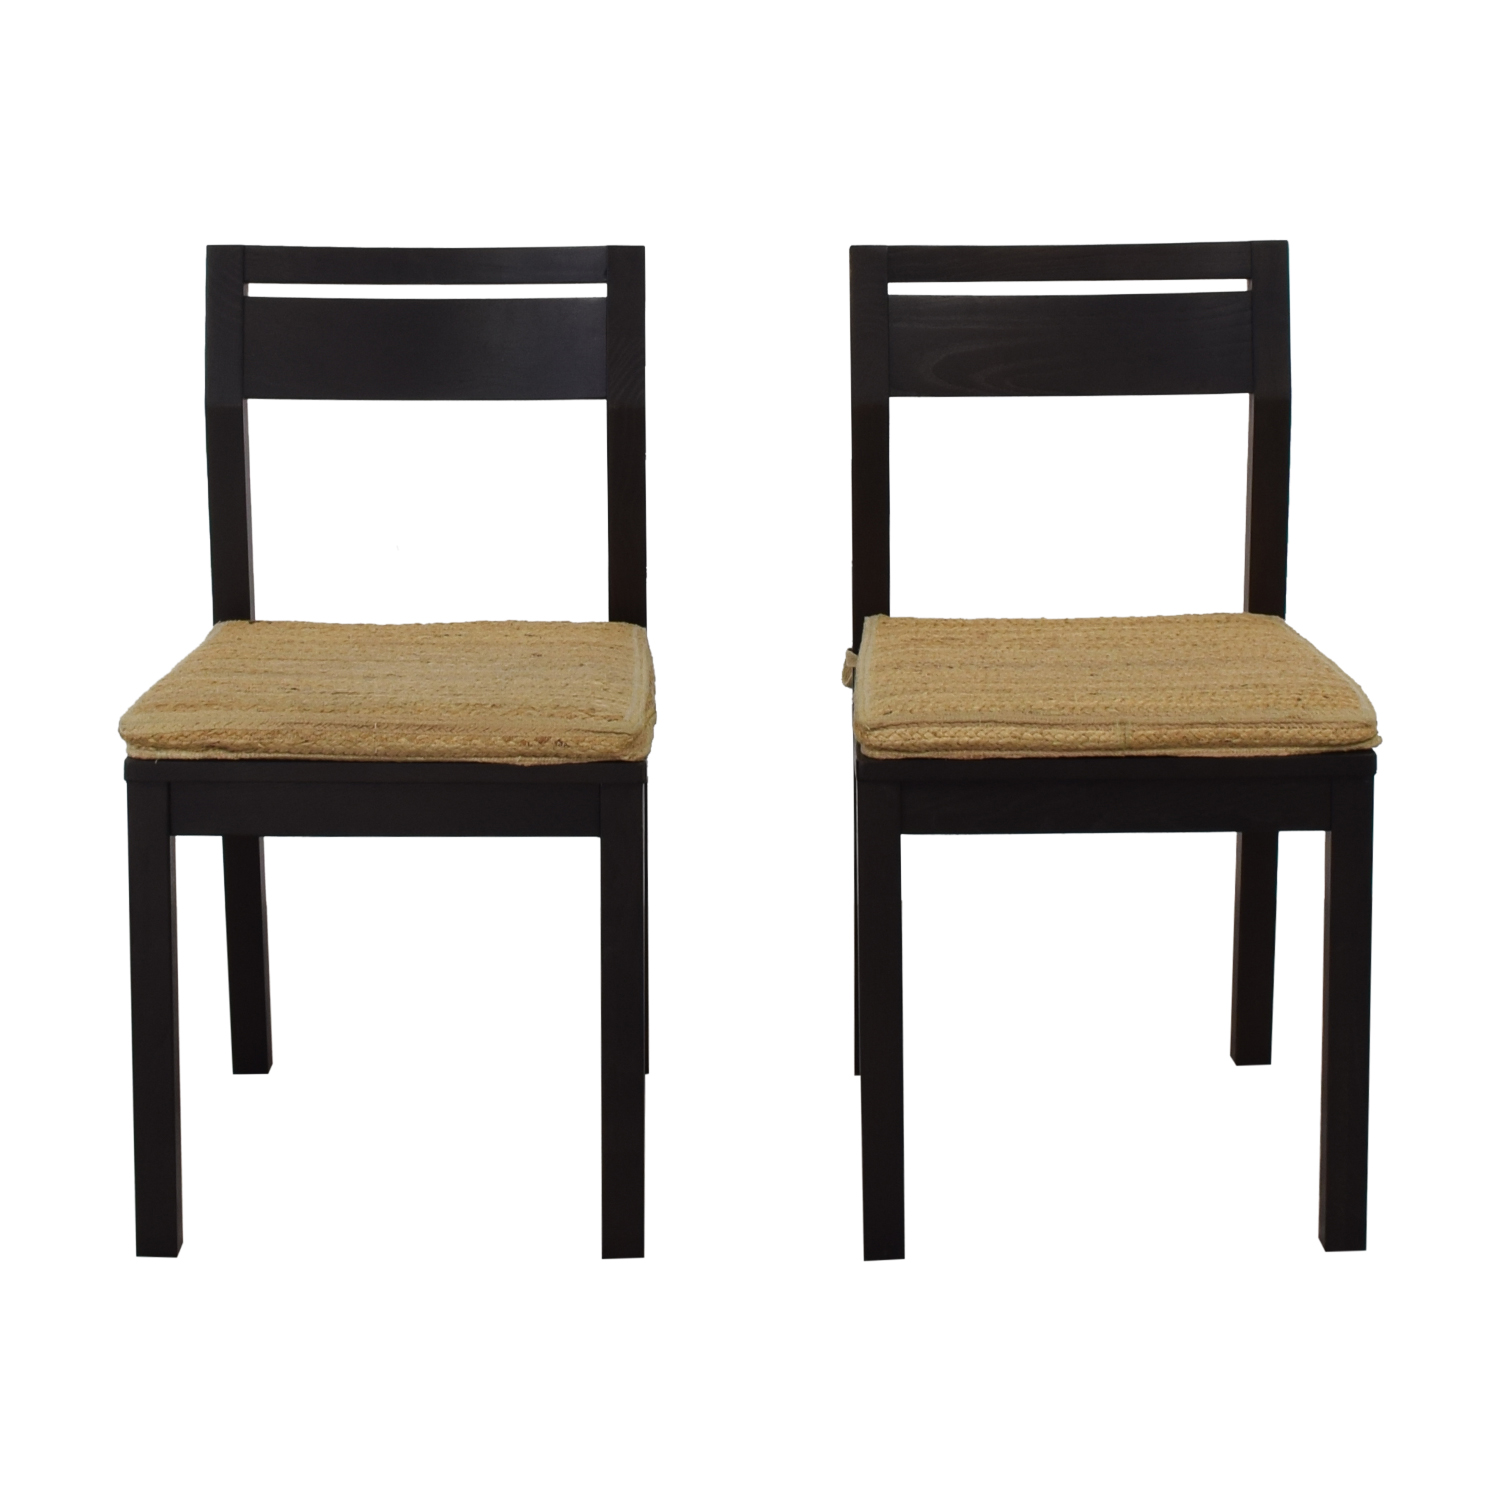 buy West Elm West Elm Dining Chairs with Woven Cushions online